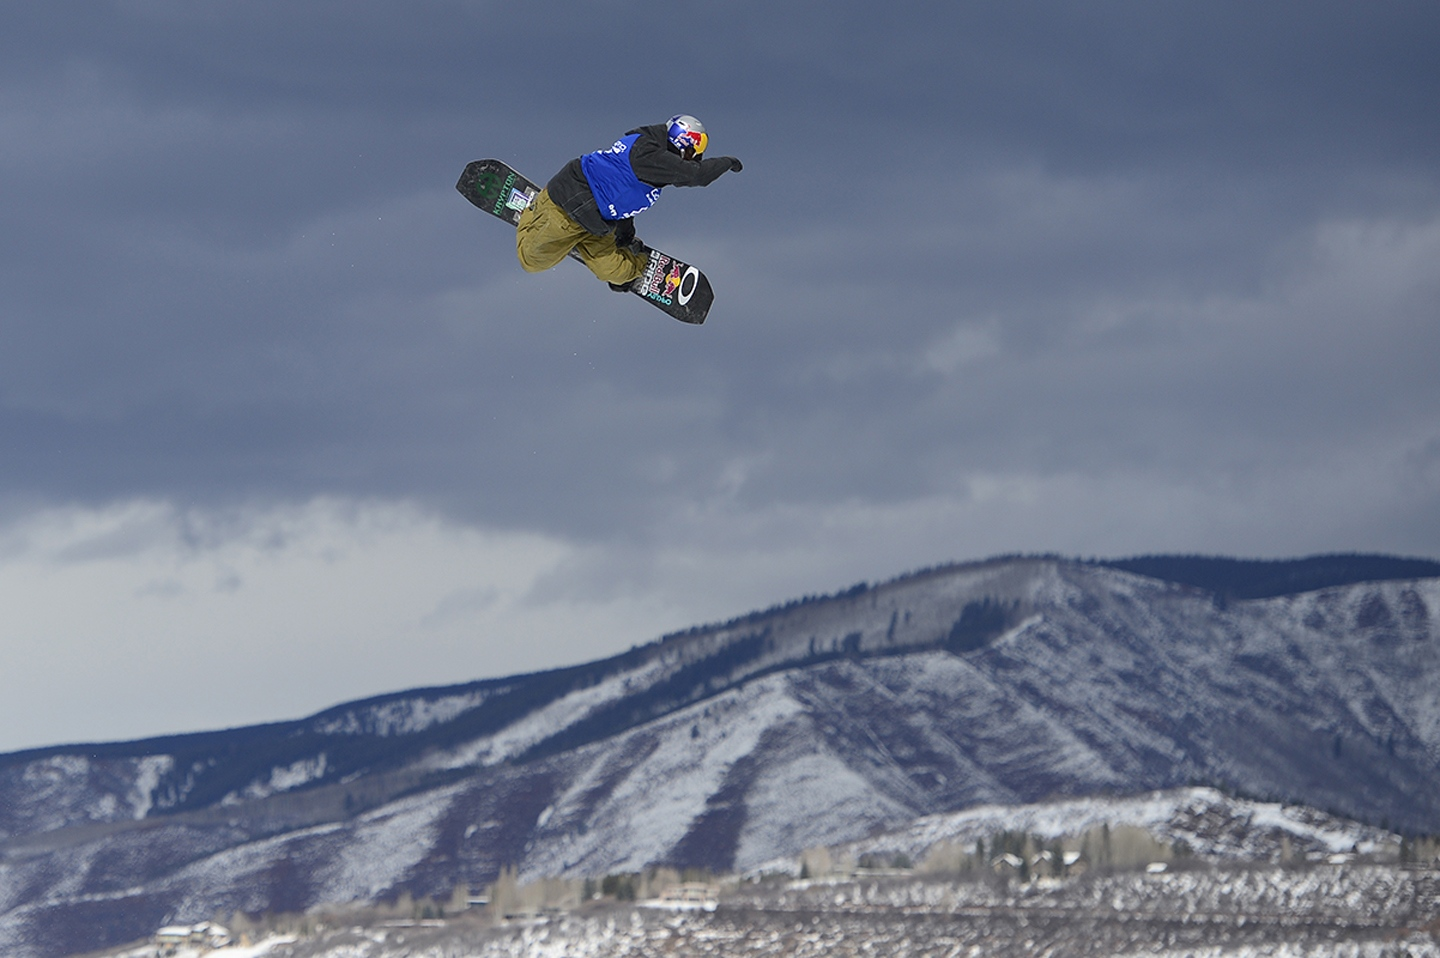 2016 Winter X Games Aspen Yuki Kadono goes for a grab on his third run during Snowboard Slopestyle Men's Final at Winter X Games 2016 at Buttermilk Mountain on January 29, 2016 in Aspen, Colorado. Mark McMorris won the event with the final score of 92.66. (Photo by Brent Lewis/The Denver Post)